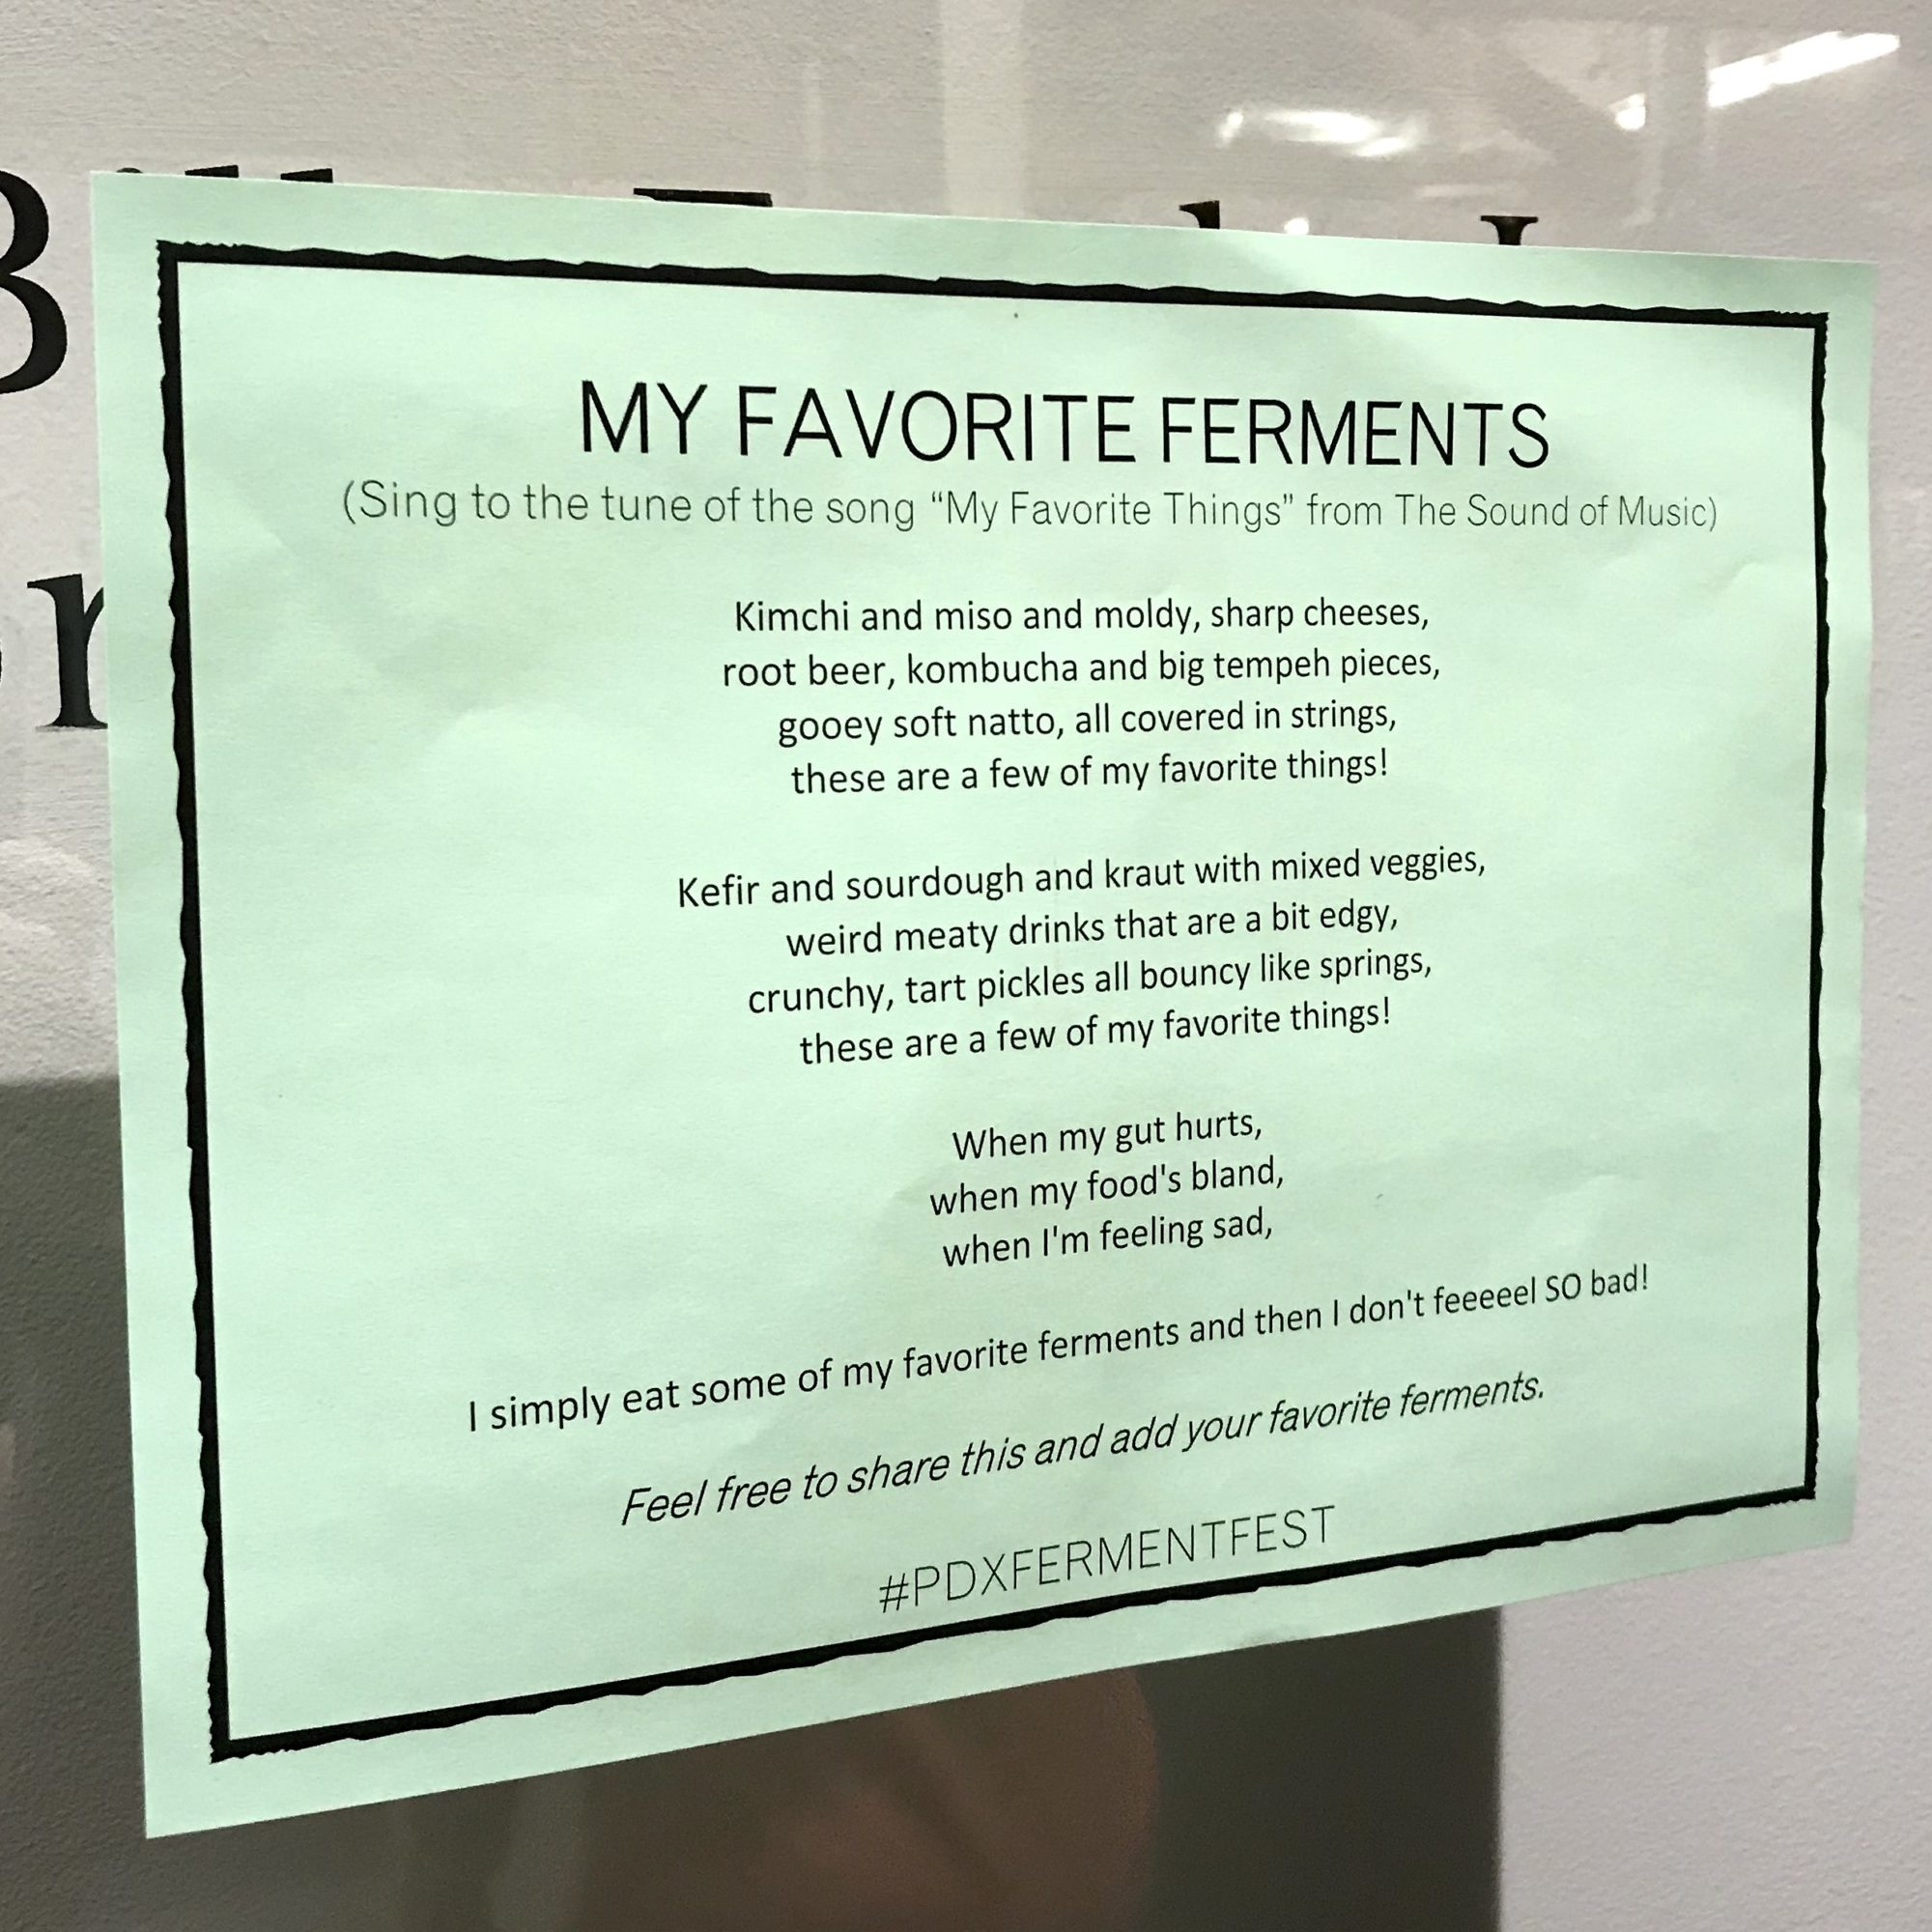 my-favorite-ferments-lyrics-portland-fermentation-festival-2019-oregon